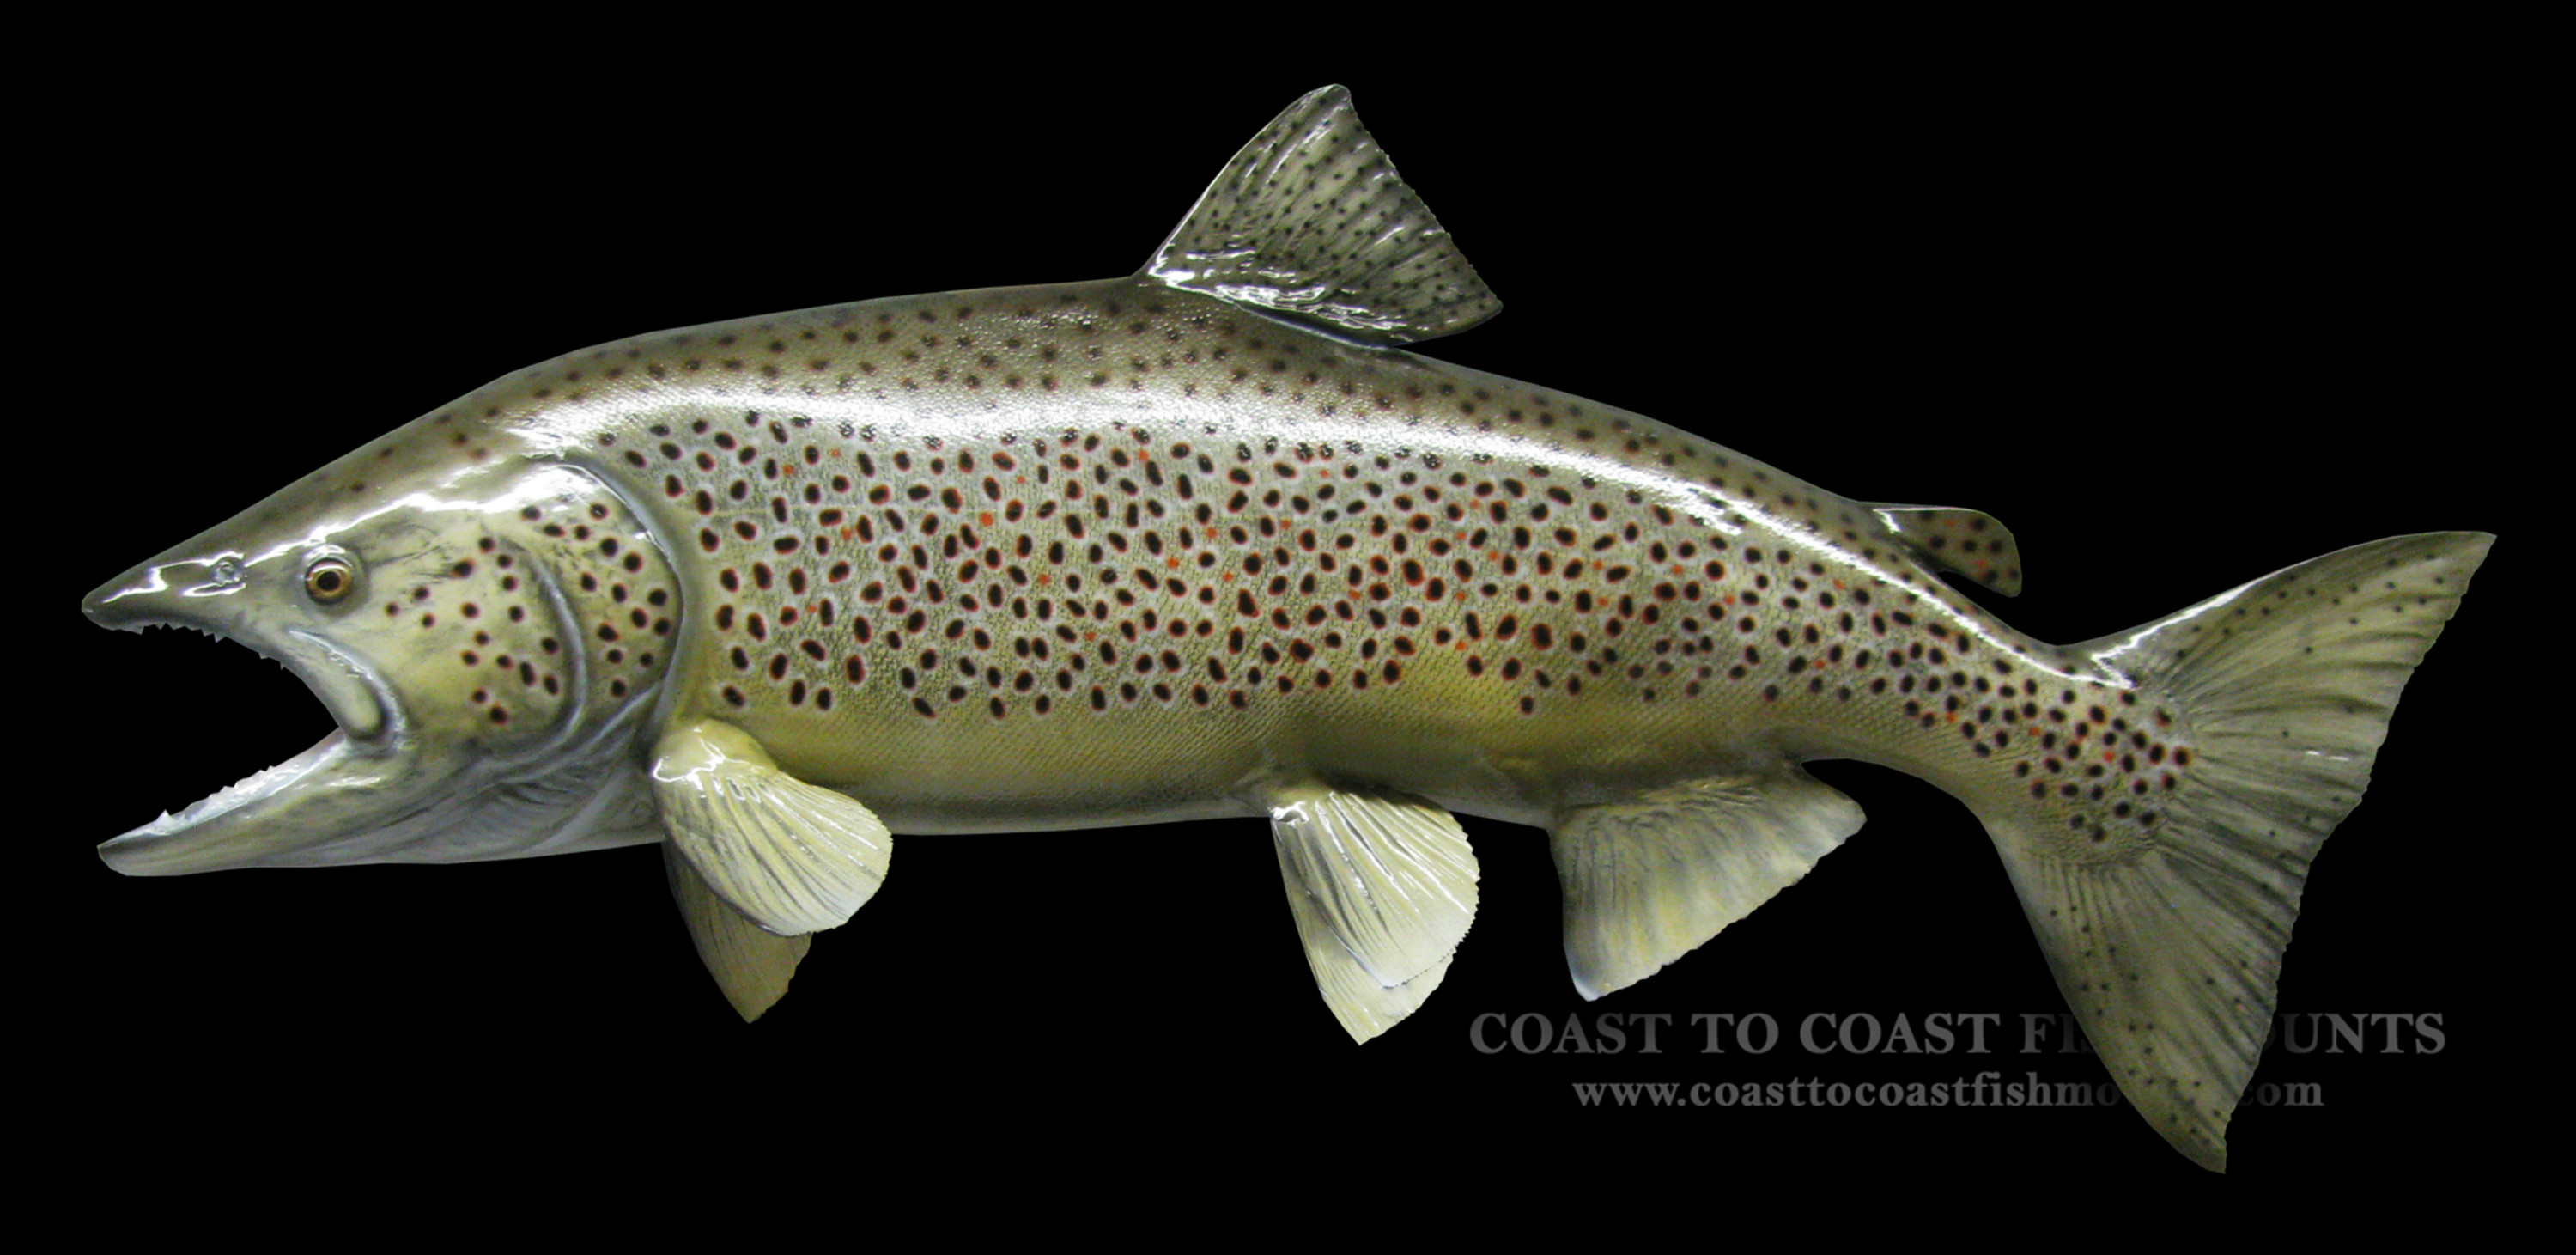 Brown trout fish mount and fish replicas coast to coast for Replica fish mounts